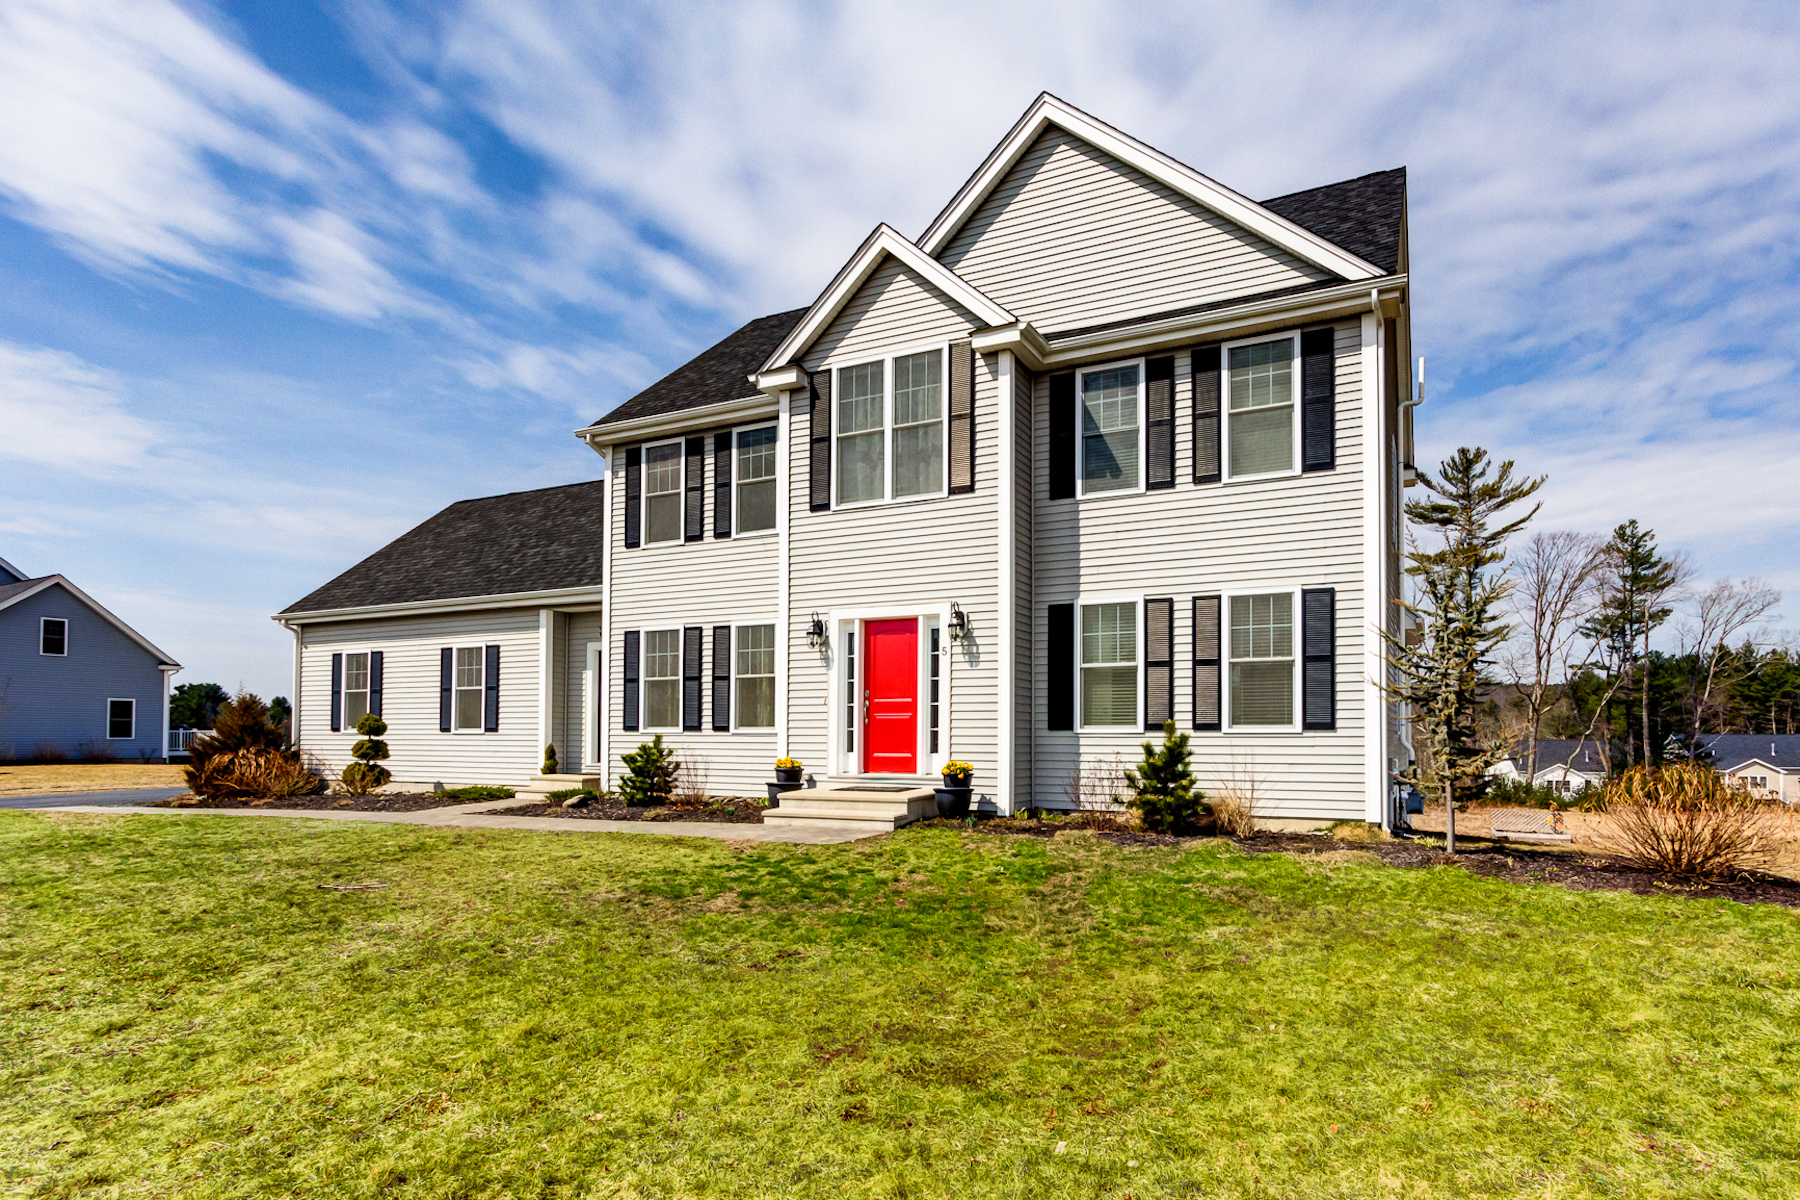 Single Family Home for Active at Inspiring Colonial - Compass Point 5 Compass Circle Boylston, Massachusetts 01505 United States